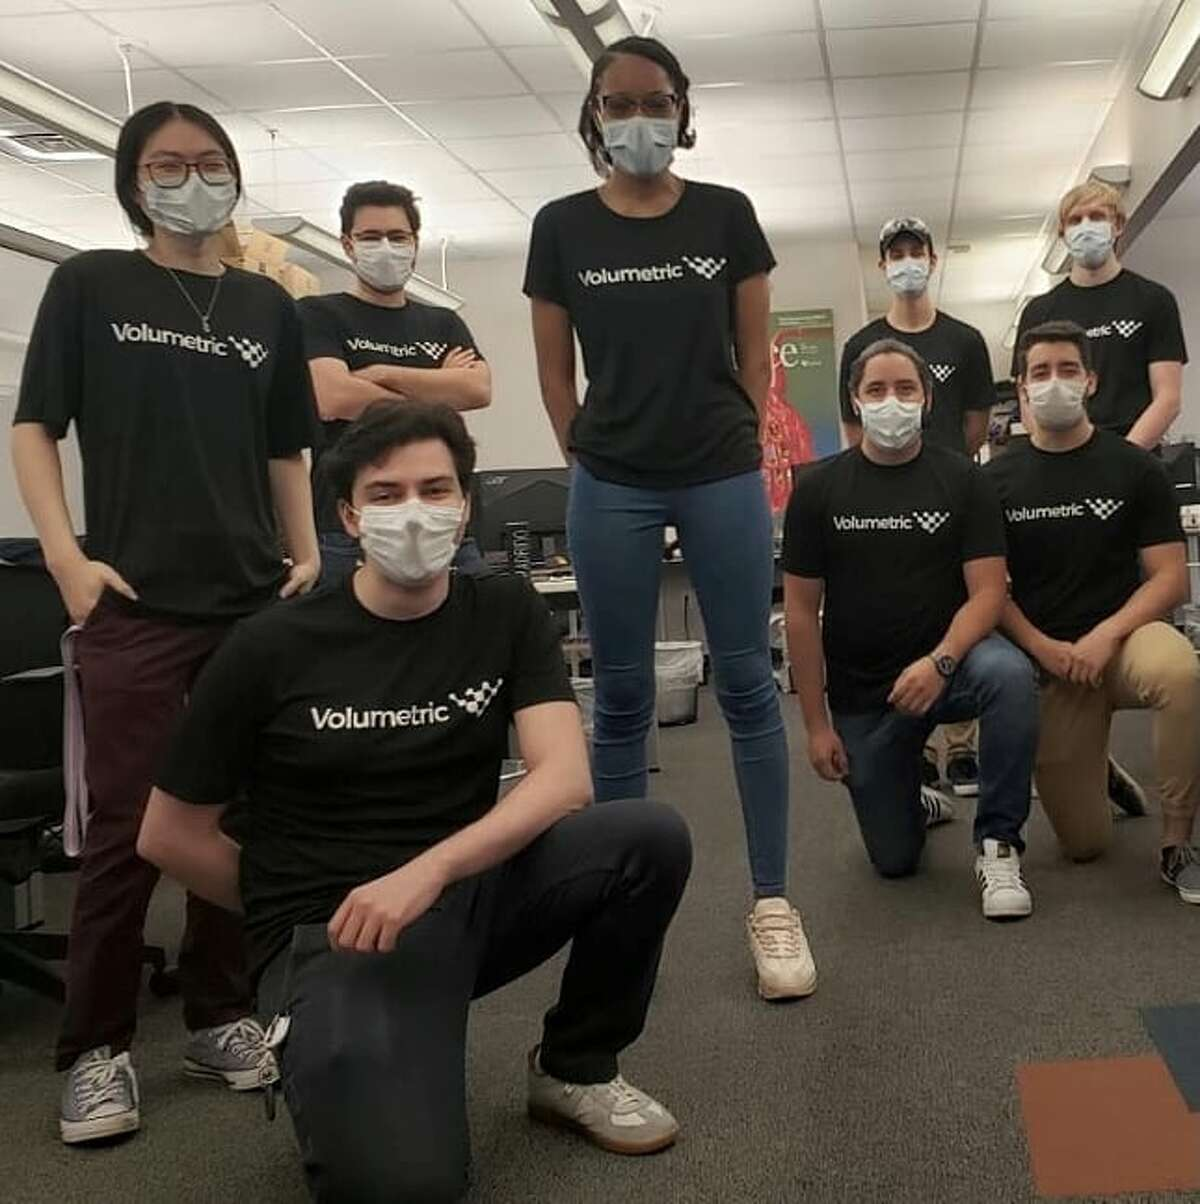 Volumetric, a Houston-based biotech startup specializing in 3D printed human tissues and organs, will expand into expanding into 11,203 square feet in East End Maker Hub, at 6501 Navigation Blvd.